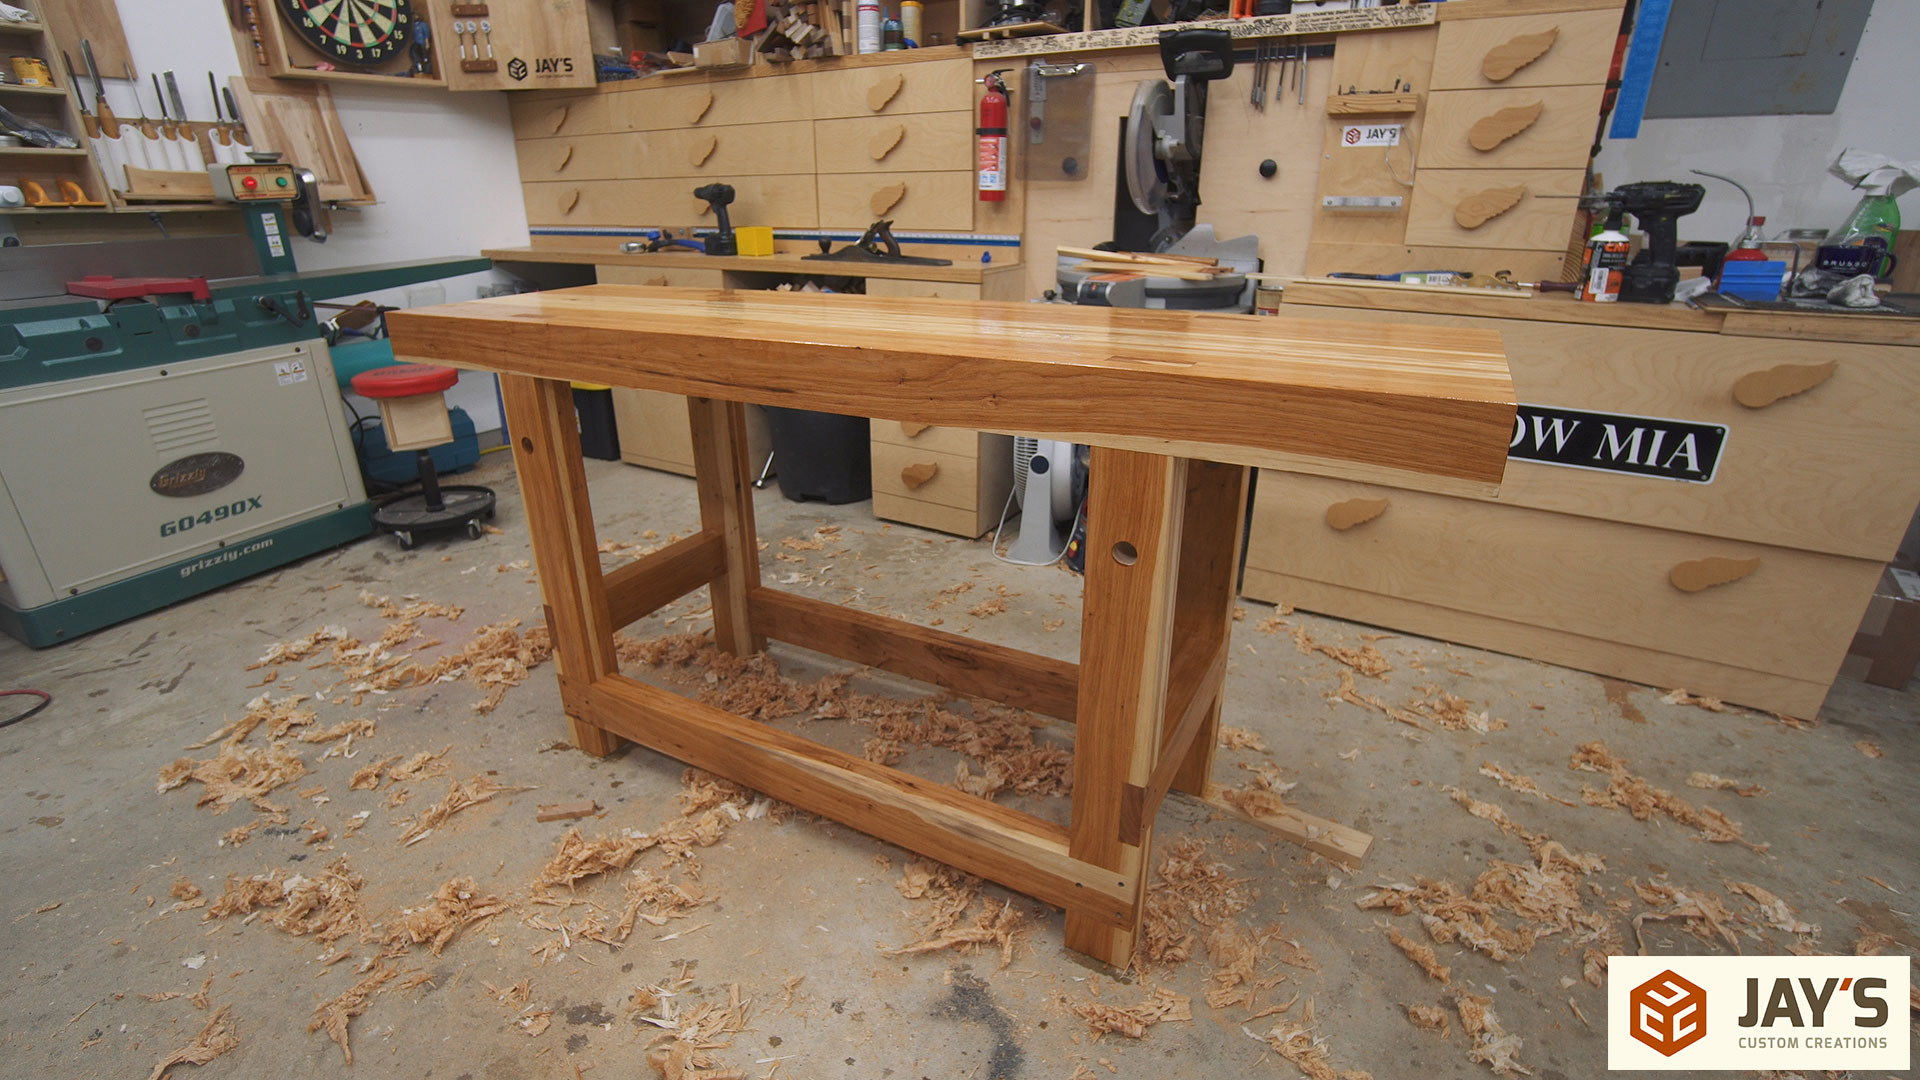 Marvelous In The Next Video For This Workbench Iu0027ll Cover Installing A Leg Vise And  Adding Dog Holes. Now That It Is Complete, What Do I Think Of Working On A  ...